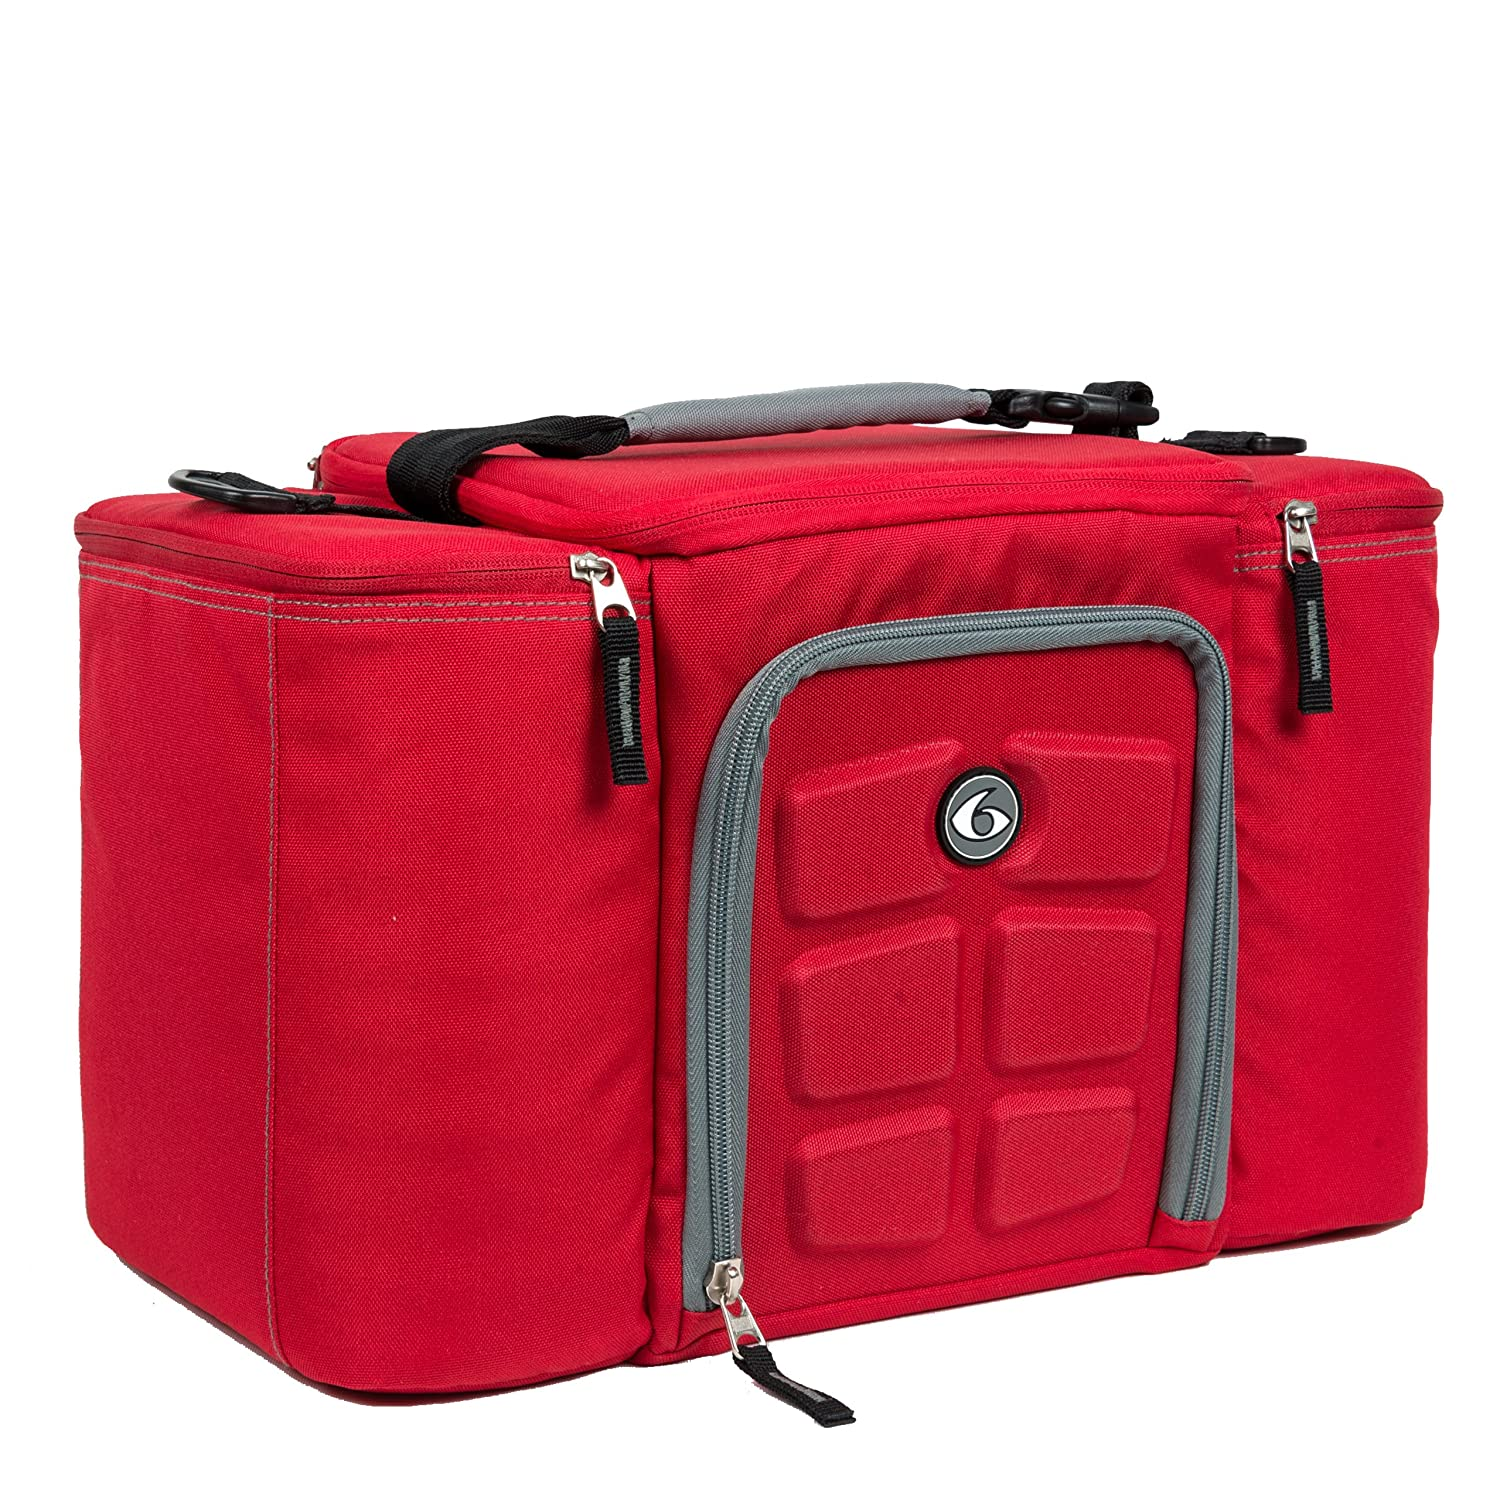 Innovator Insulated Meal Management Bag, Red, 300 (3 Meals)